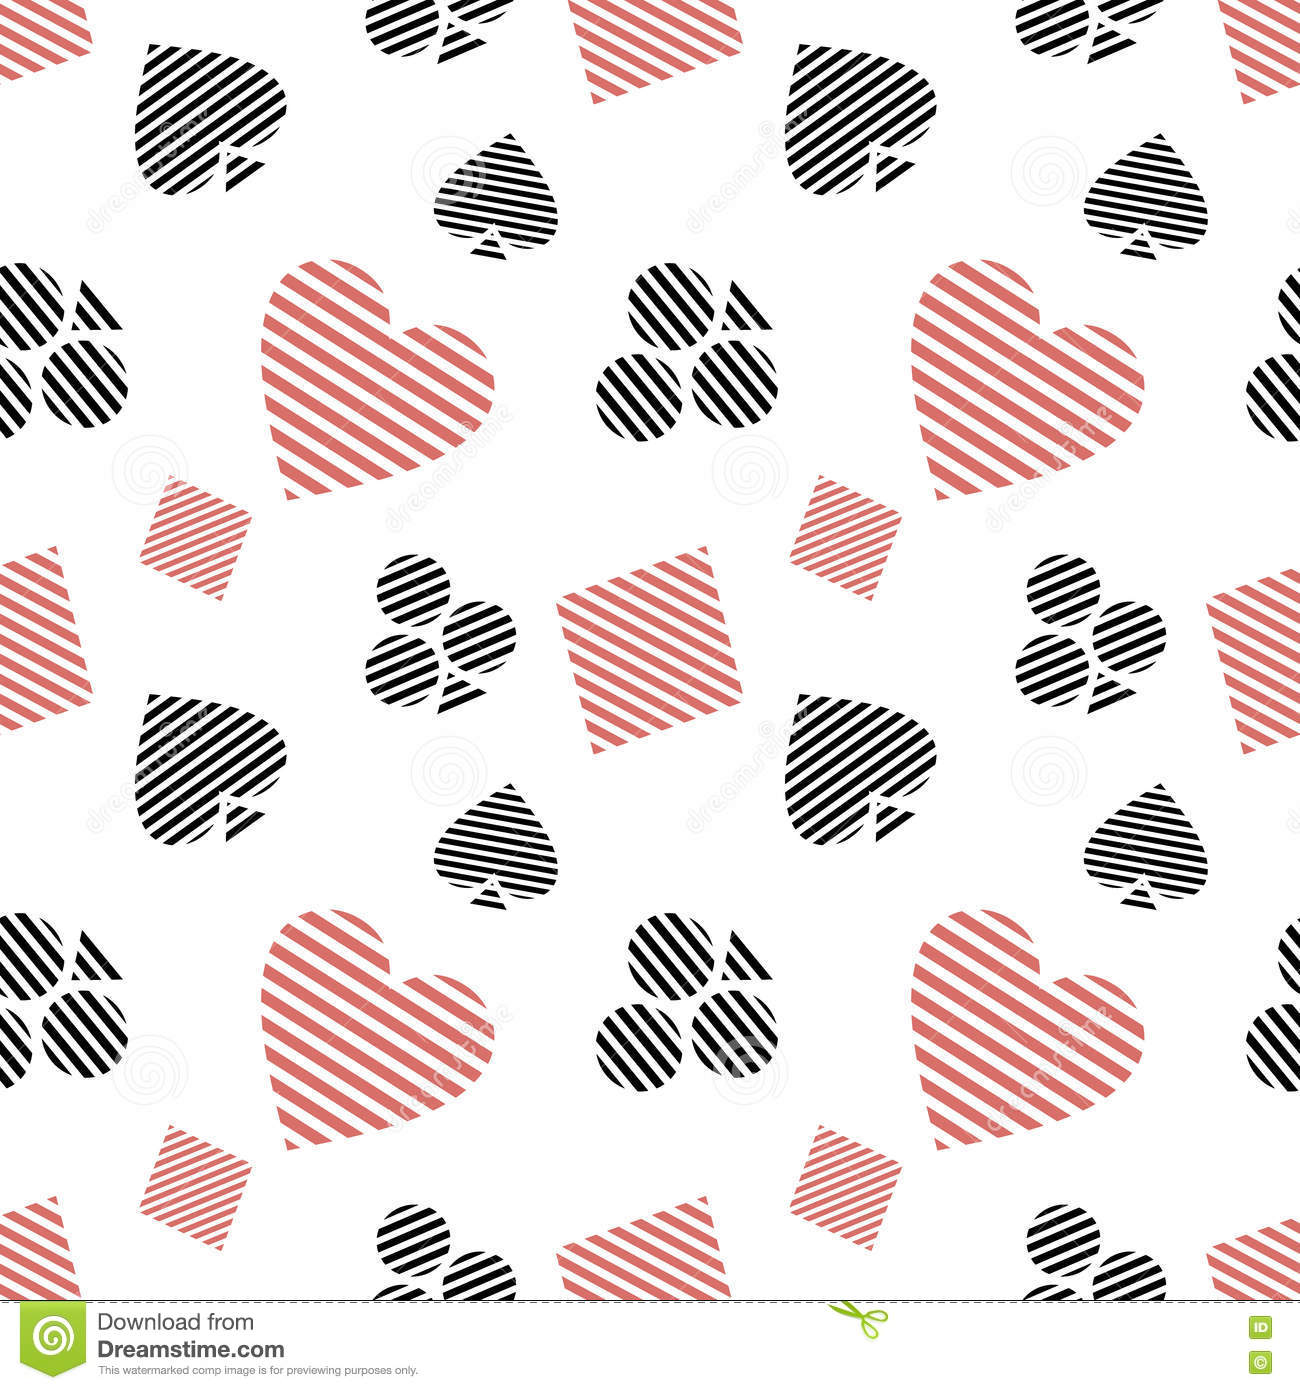 Vector seamless pattern with black and red lined playing card vector seamless pattern with black and red lined playing card symbols on the white background biocorpaavc